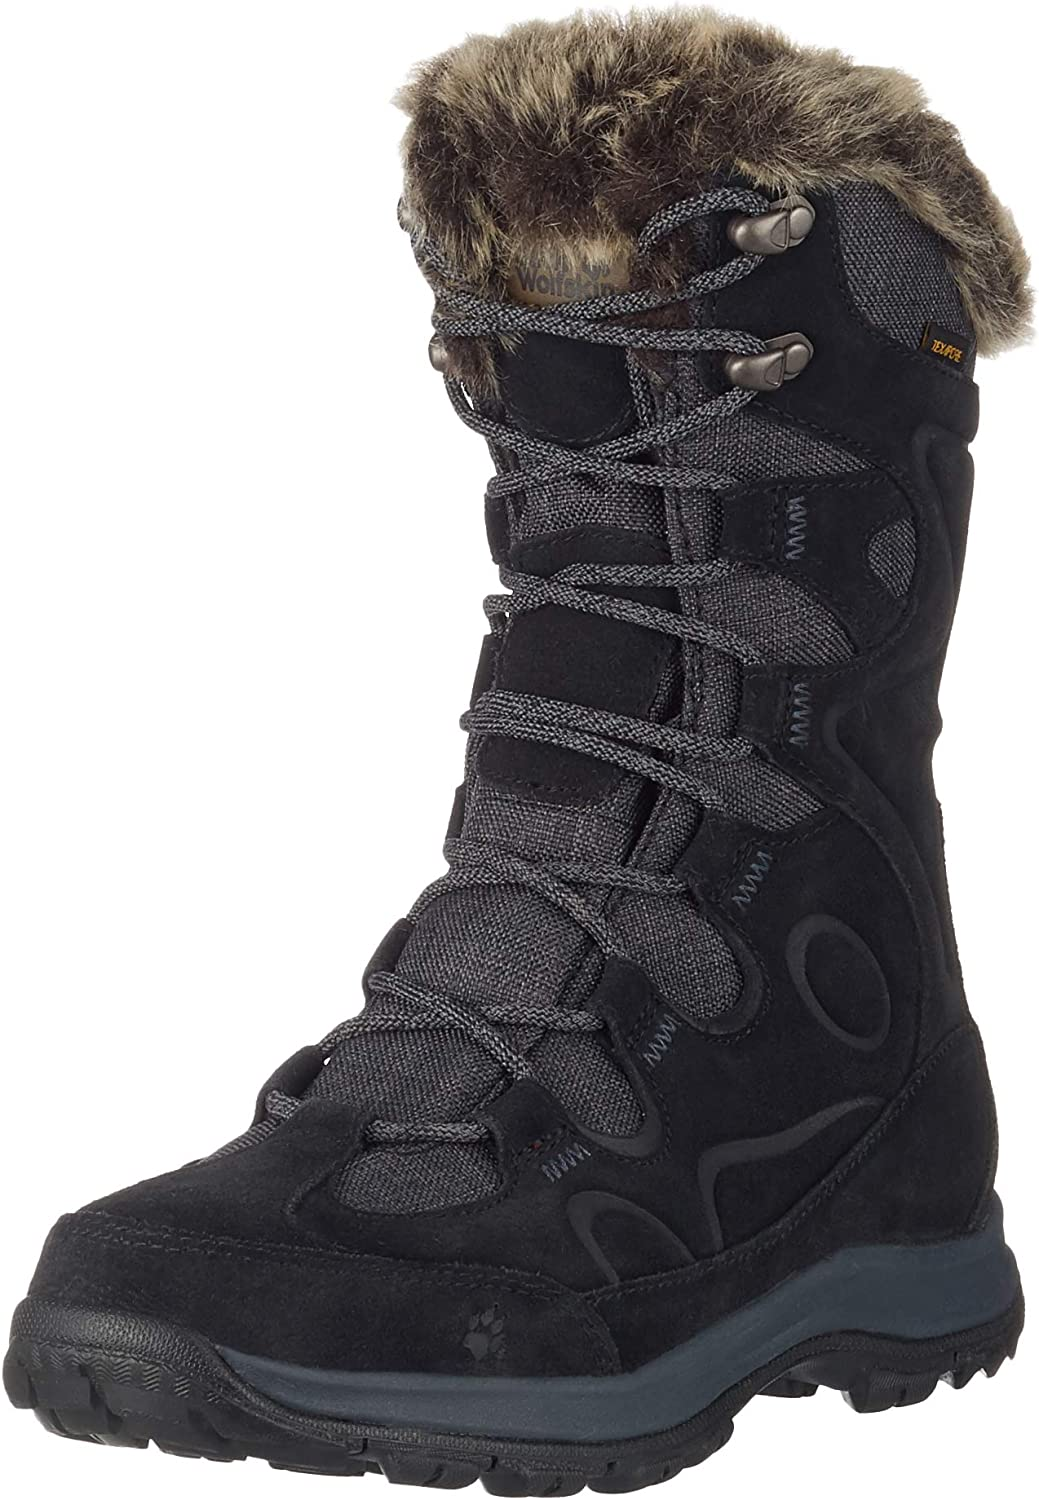 Jack Wolfskin Womens Glacier Bay Texapore High W Women's Waterproof -22°f Insulated Snow Casual Boot Snow Boot